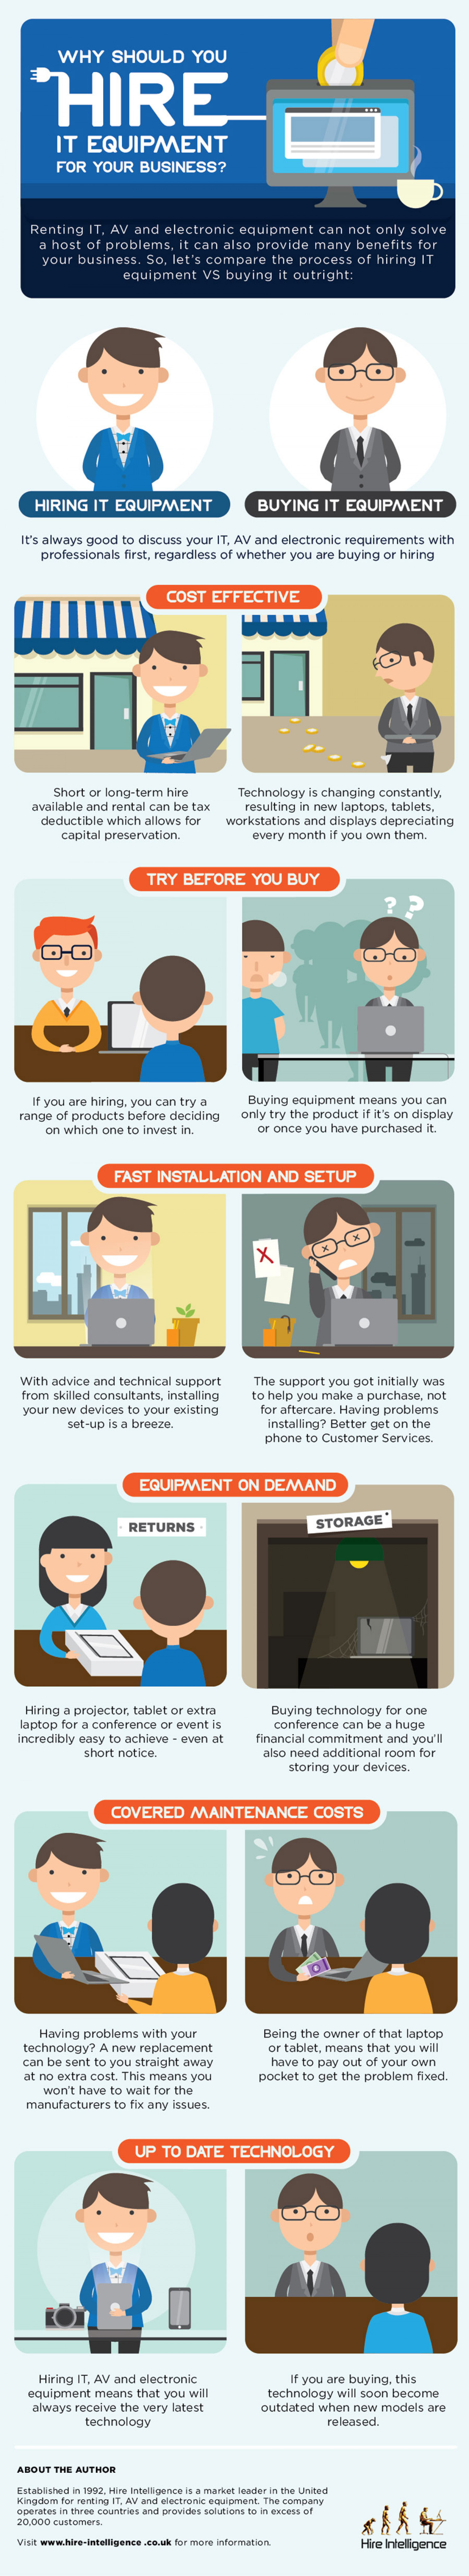 Why Should You Hire IT Equipment For Business? Infographic